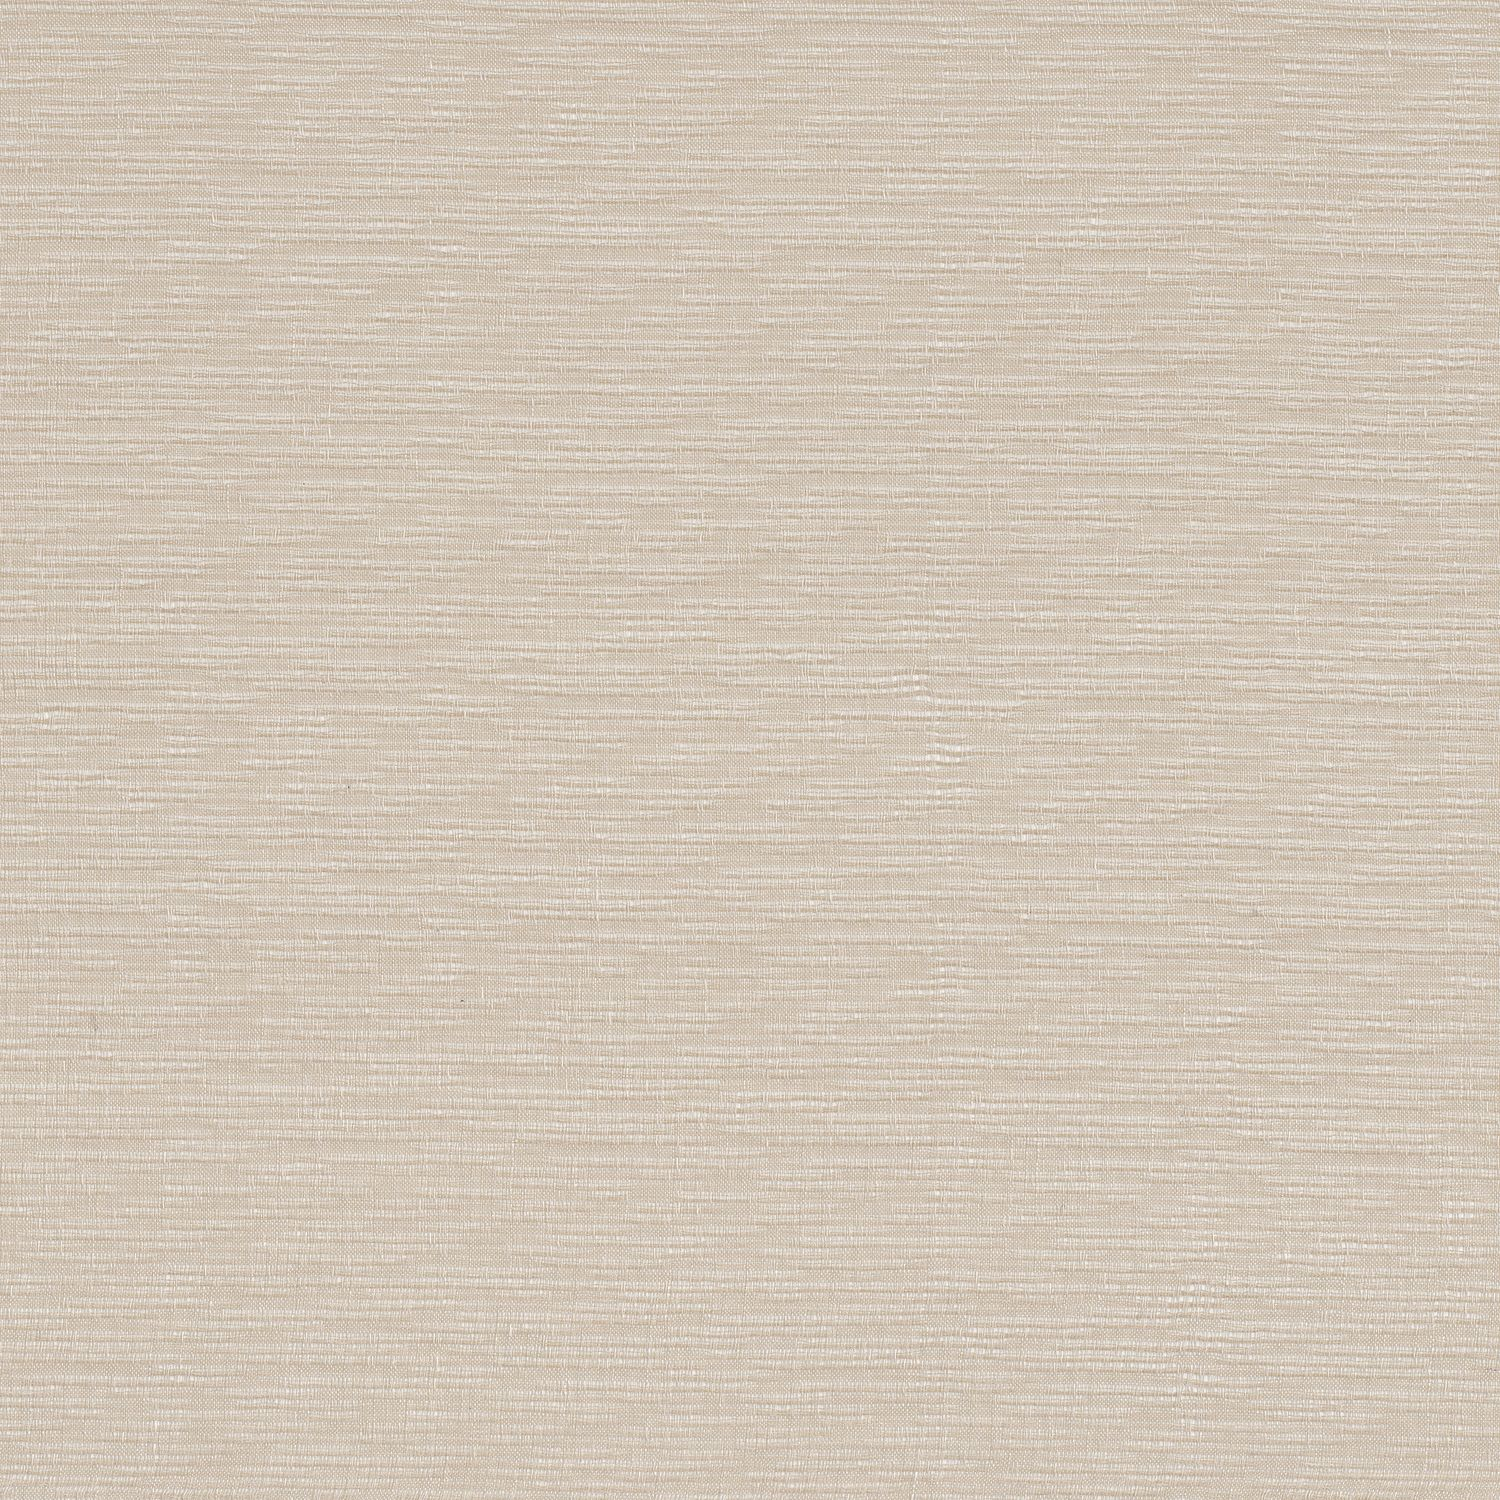 41740236 Collection - Delicatesse Fabric